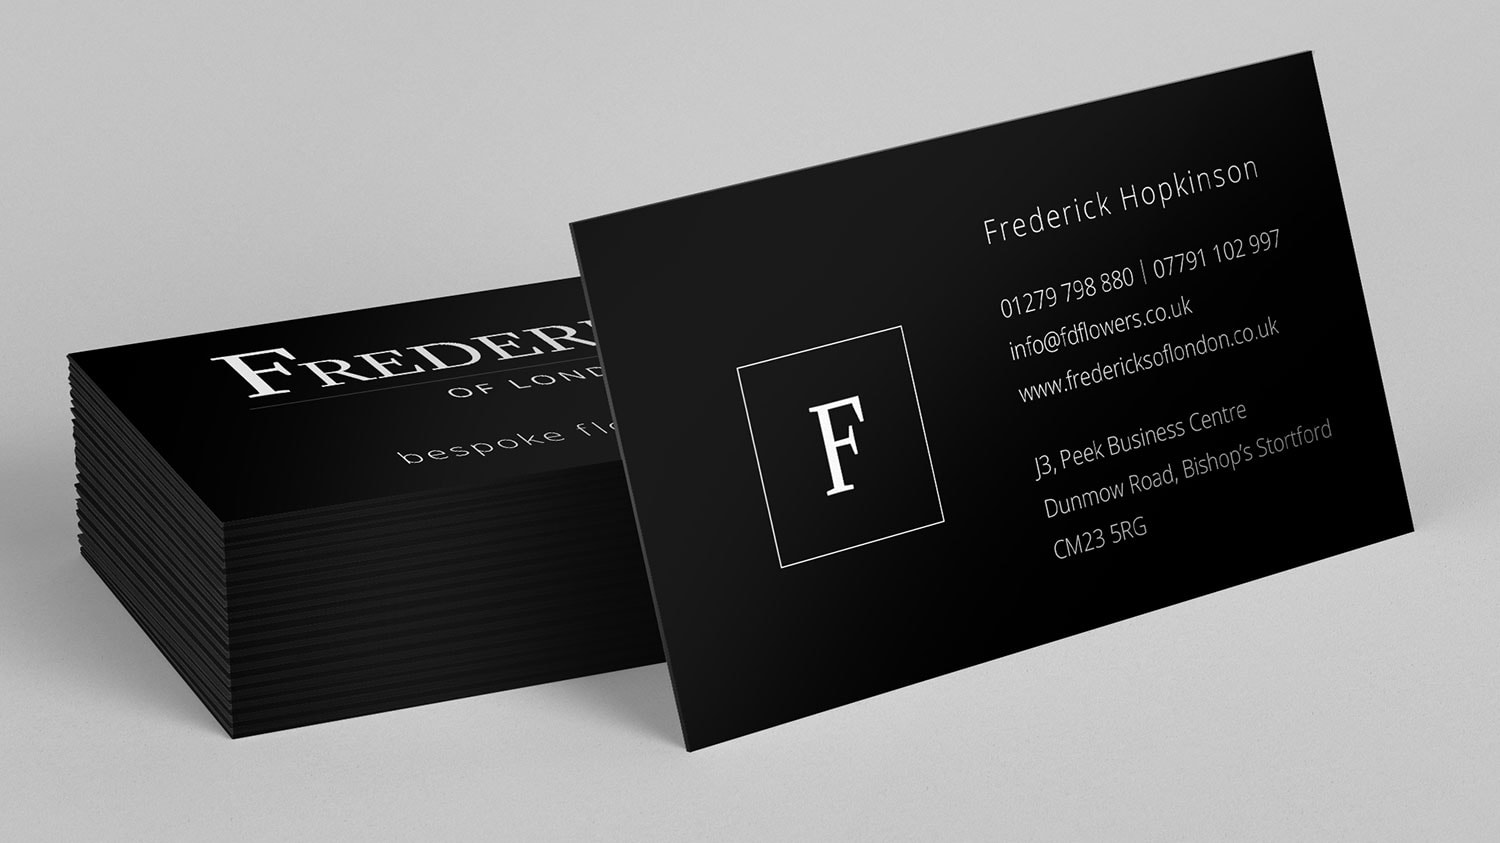 Business card resting on stack of business cards for Fredericks of London branding design